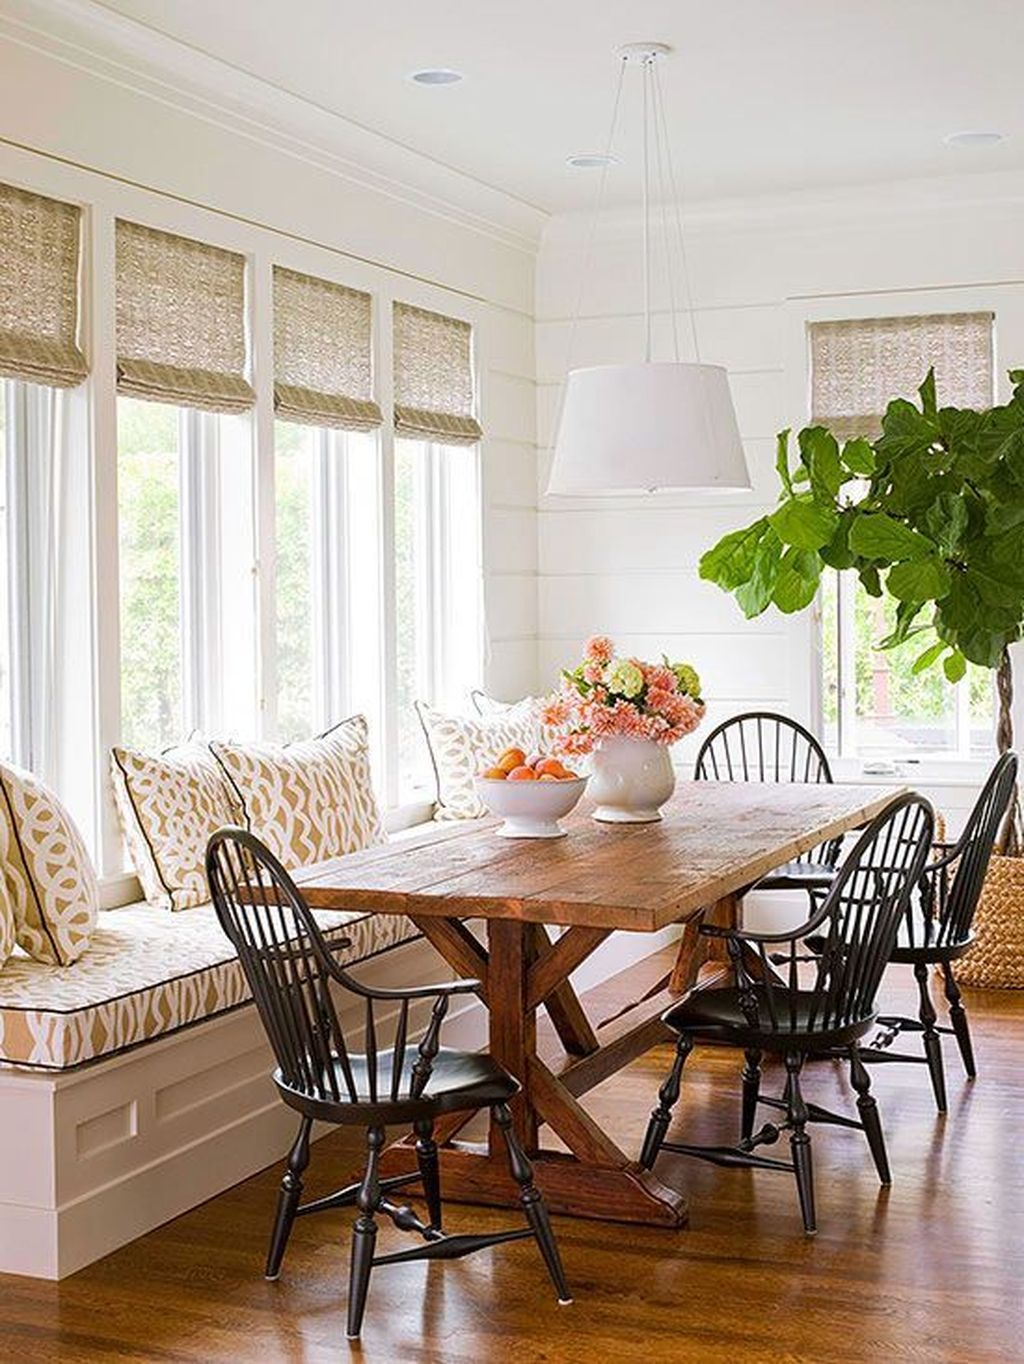 50 Rustic Farmhouse Banquette Seating in Kitchen